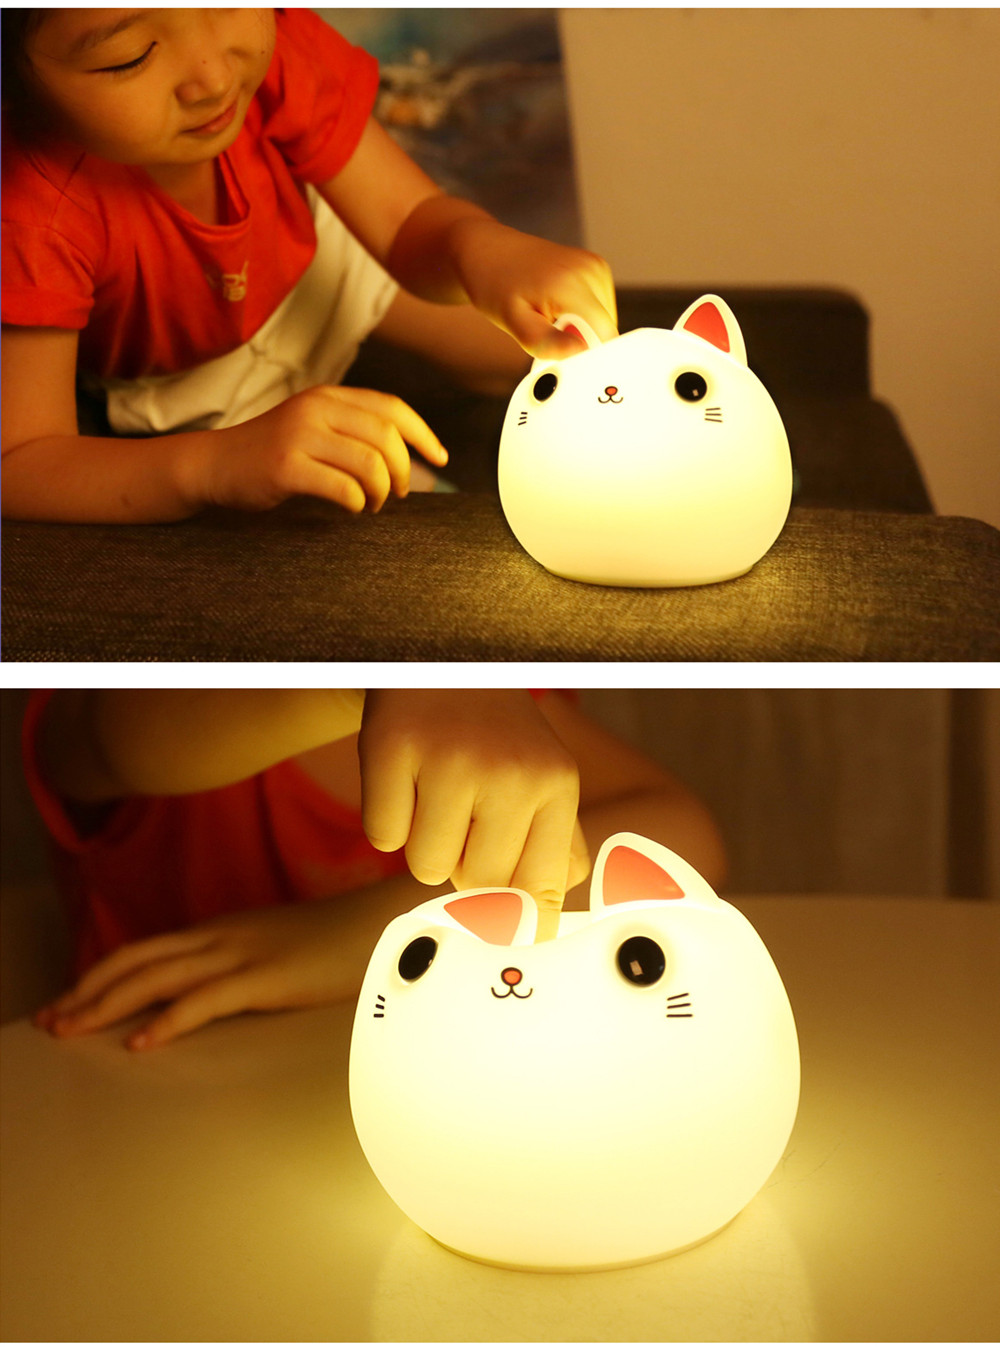 SuperNight Cute Cartoon Cat LED Night Light Silicone Rechargeable Touch Tap Kids Baby Bedroom Bedside Warm Colorful Table Lamp (13)